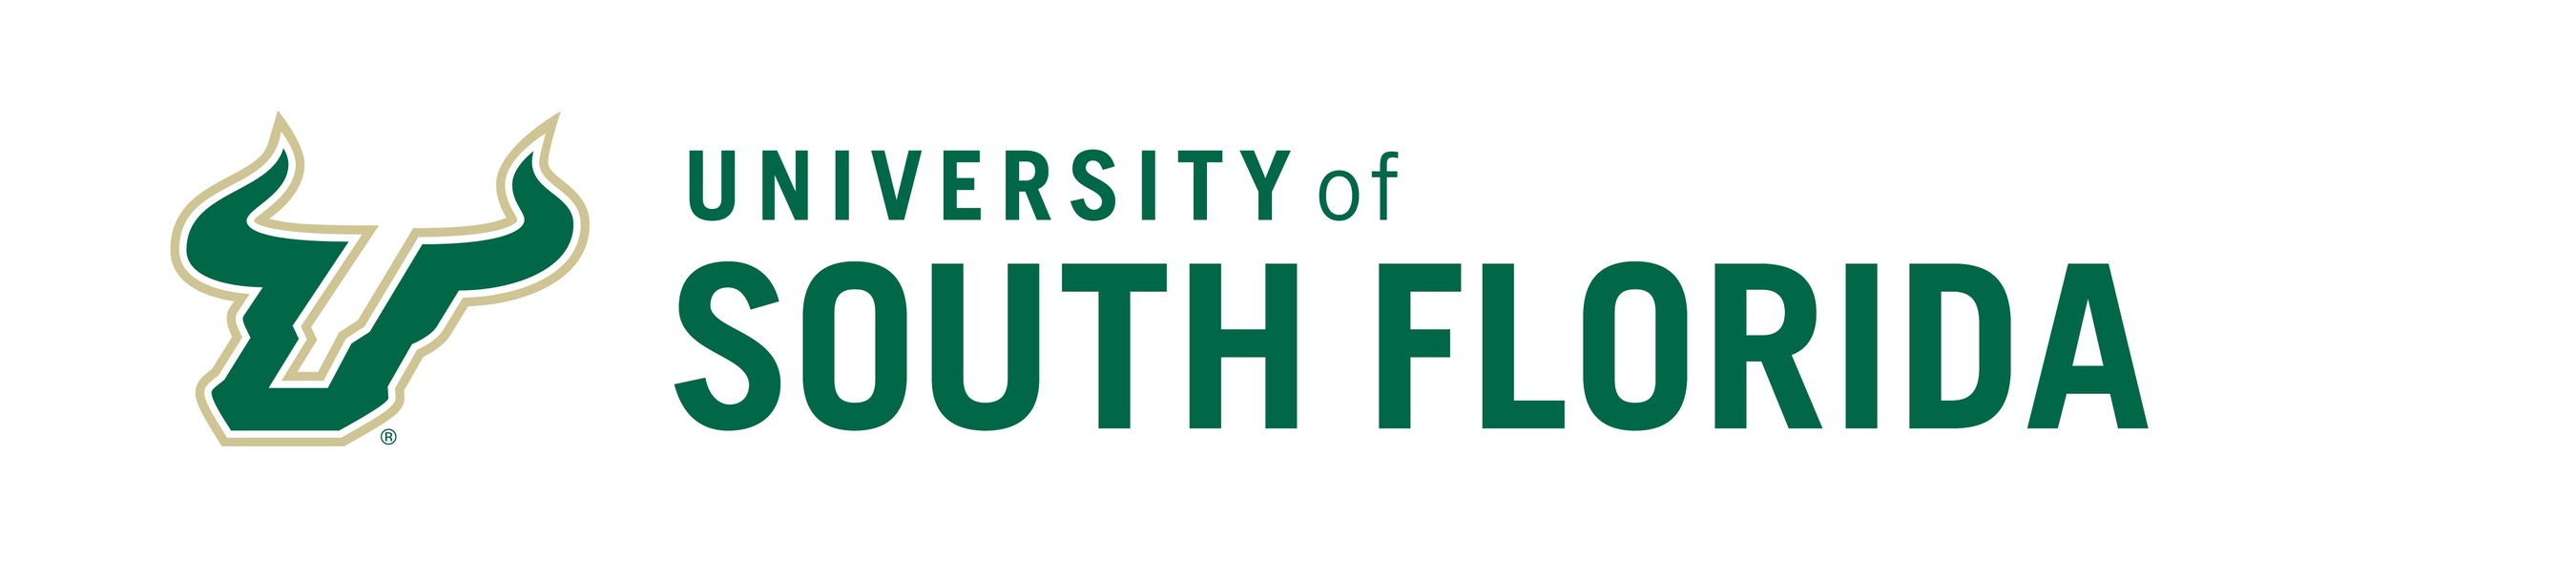 University of South Florida Wins APLU's 2019 Institutional Award for Global Learning, Research & Engagement